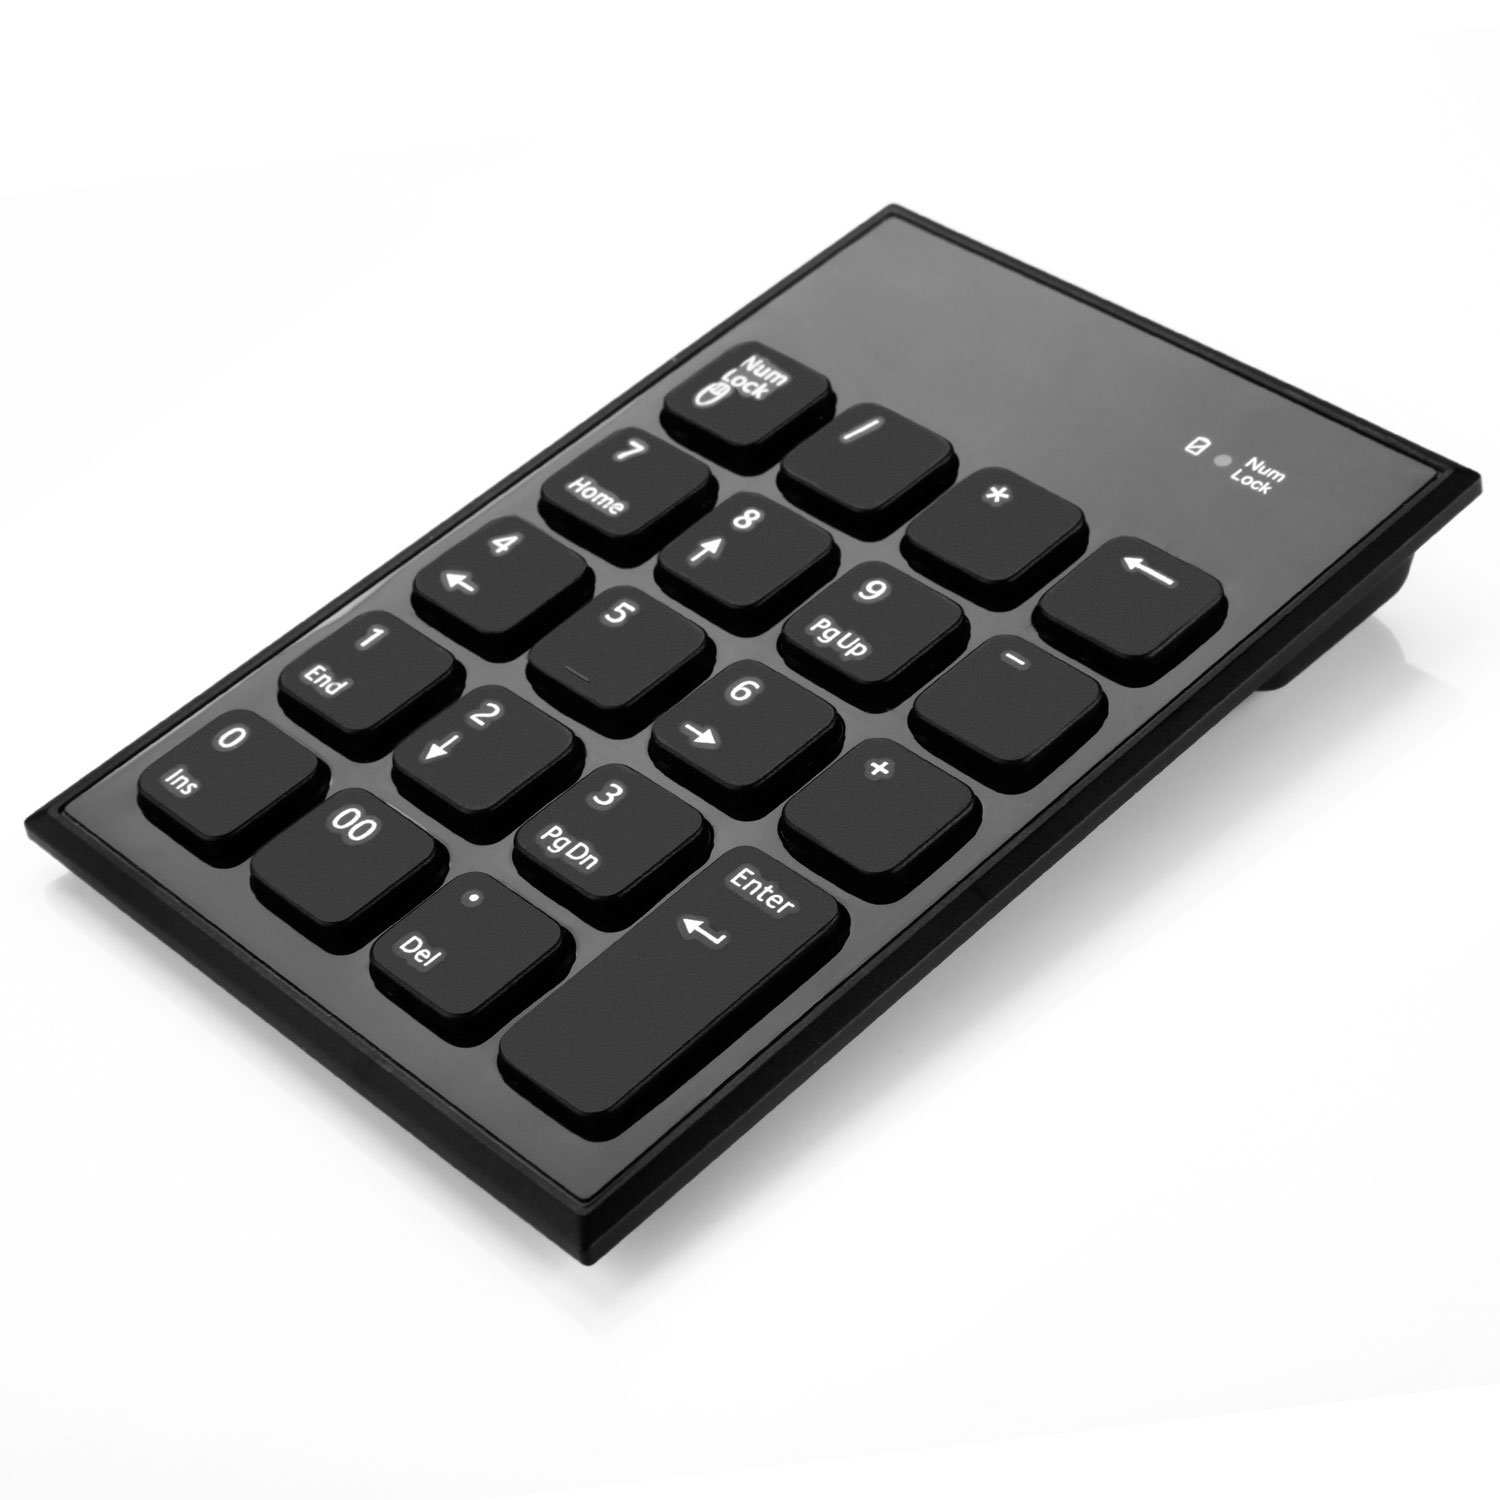 5b3b05140c2 Bluetooth Number Pad, Jelly Comb 19 Keys Wireless Numeric Keypad for Tablet  Laptop Notebook Cell